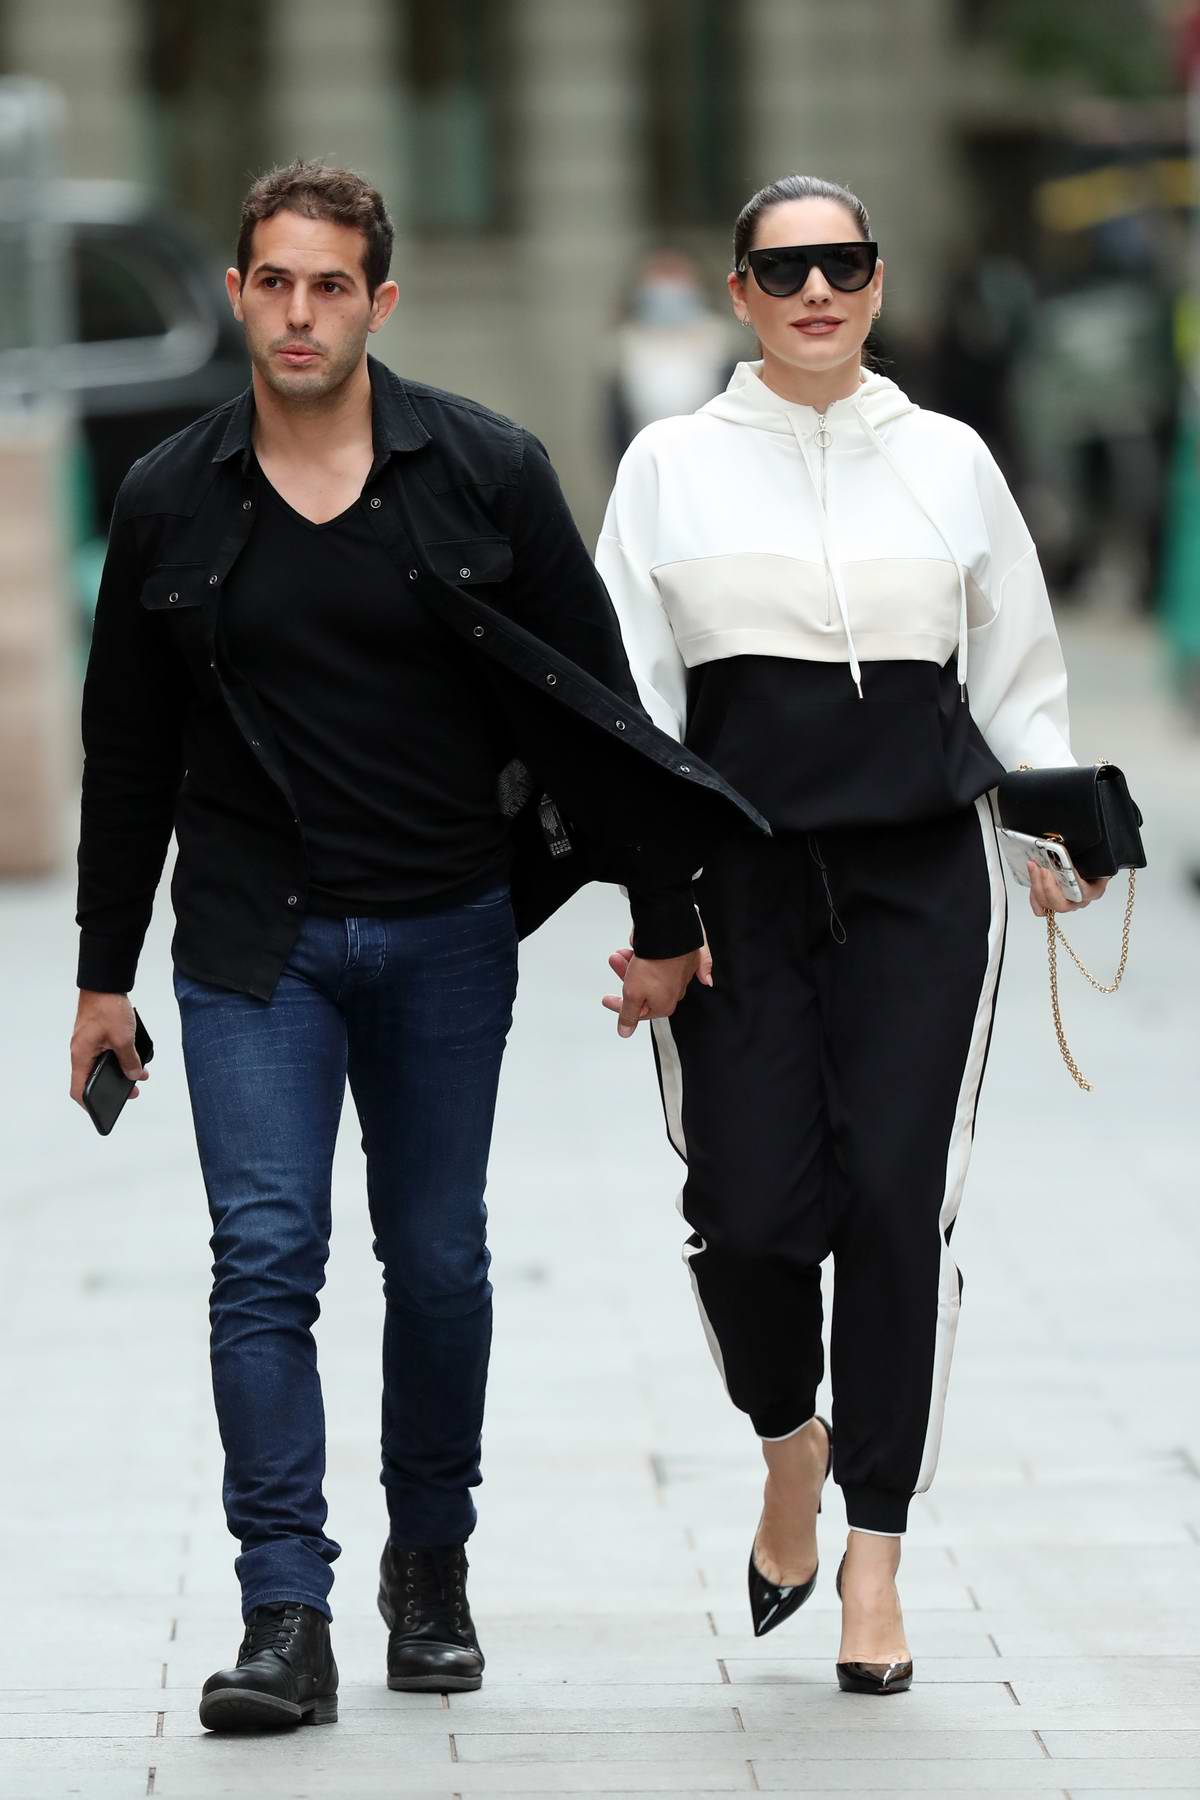 Kelly Brook and boyfriend Jeremy Parisi hold hands as they arrive at Heart Radio in London, UK